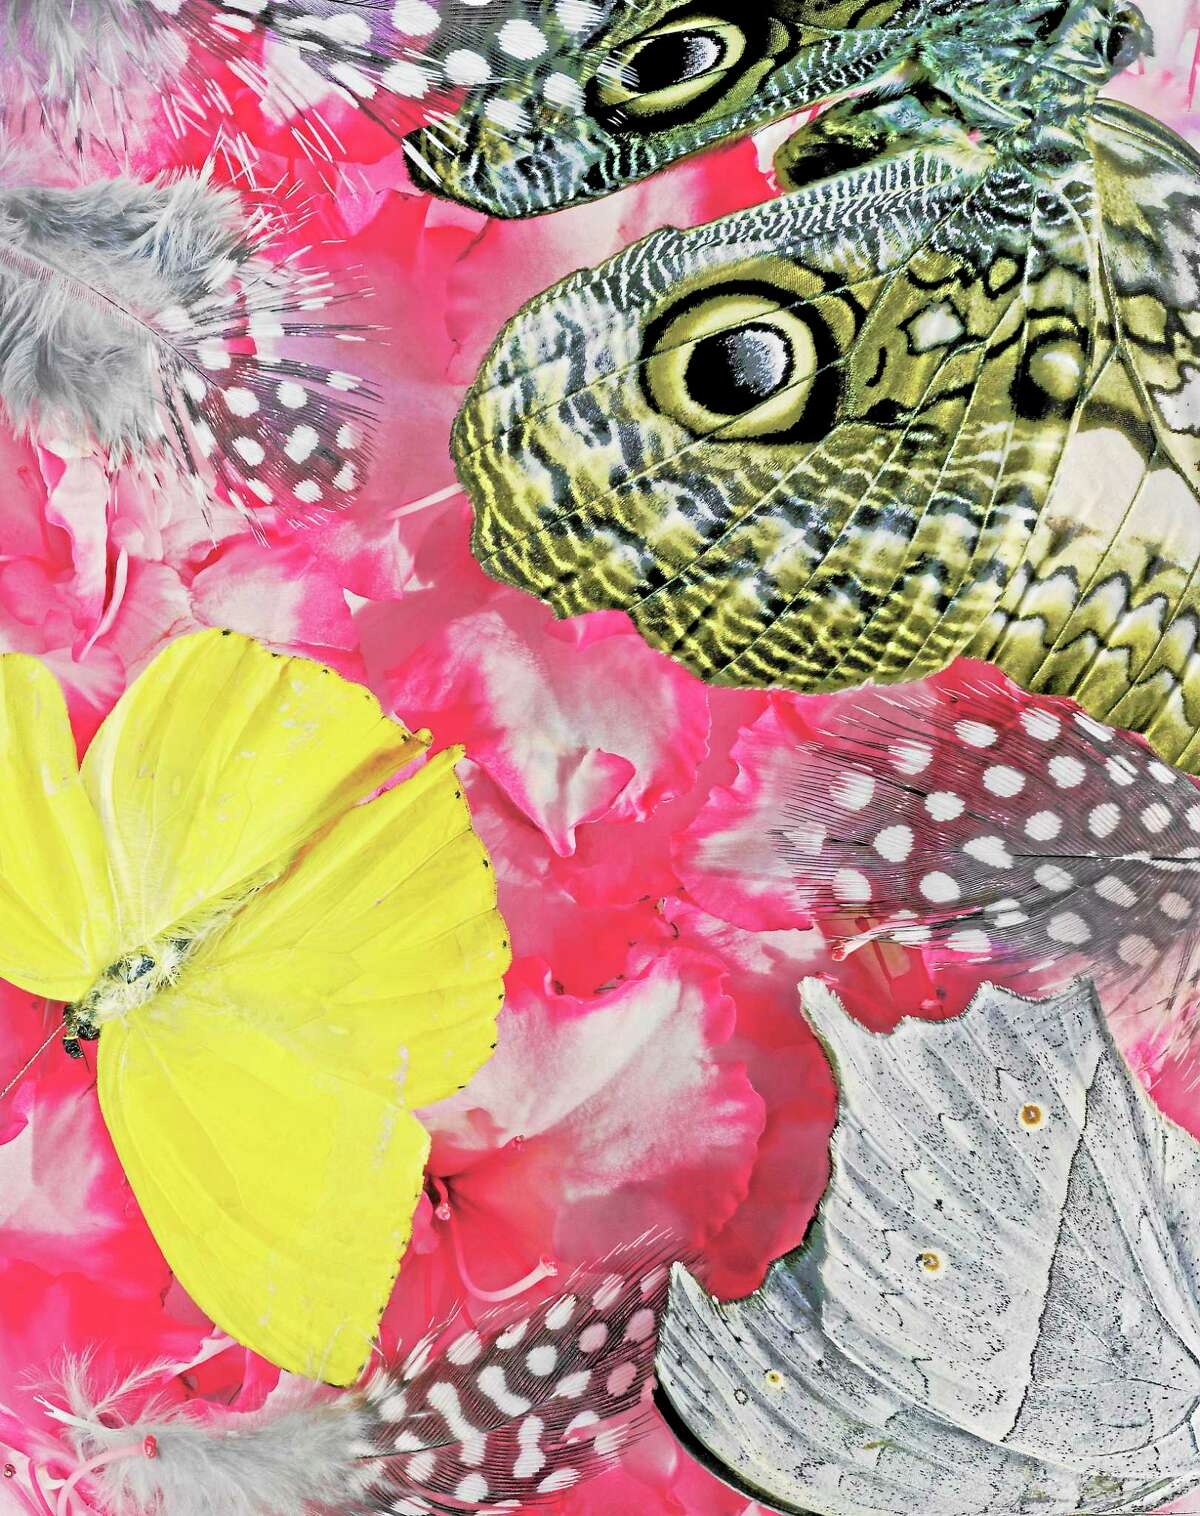 Artwork created and produced by Hartford native Jennifer Formica will be on display at the Green Street Arts Center in Middletown through Oct. 29.